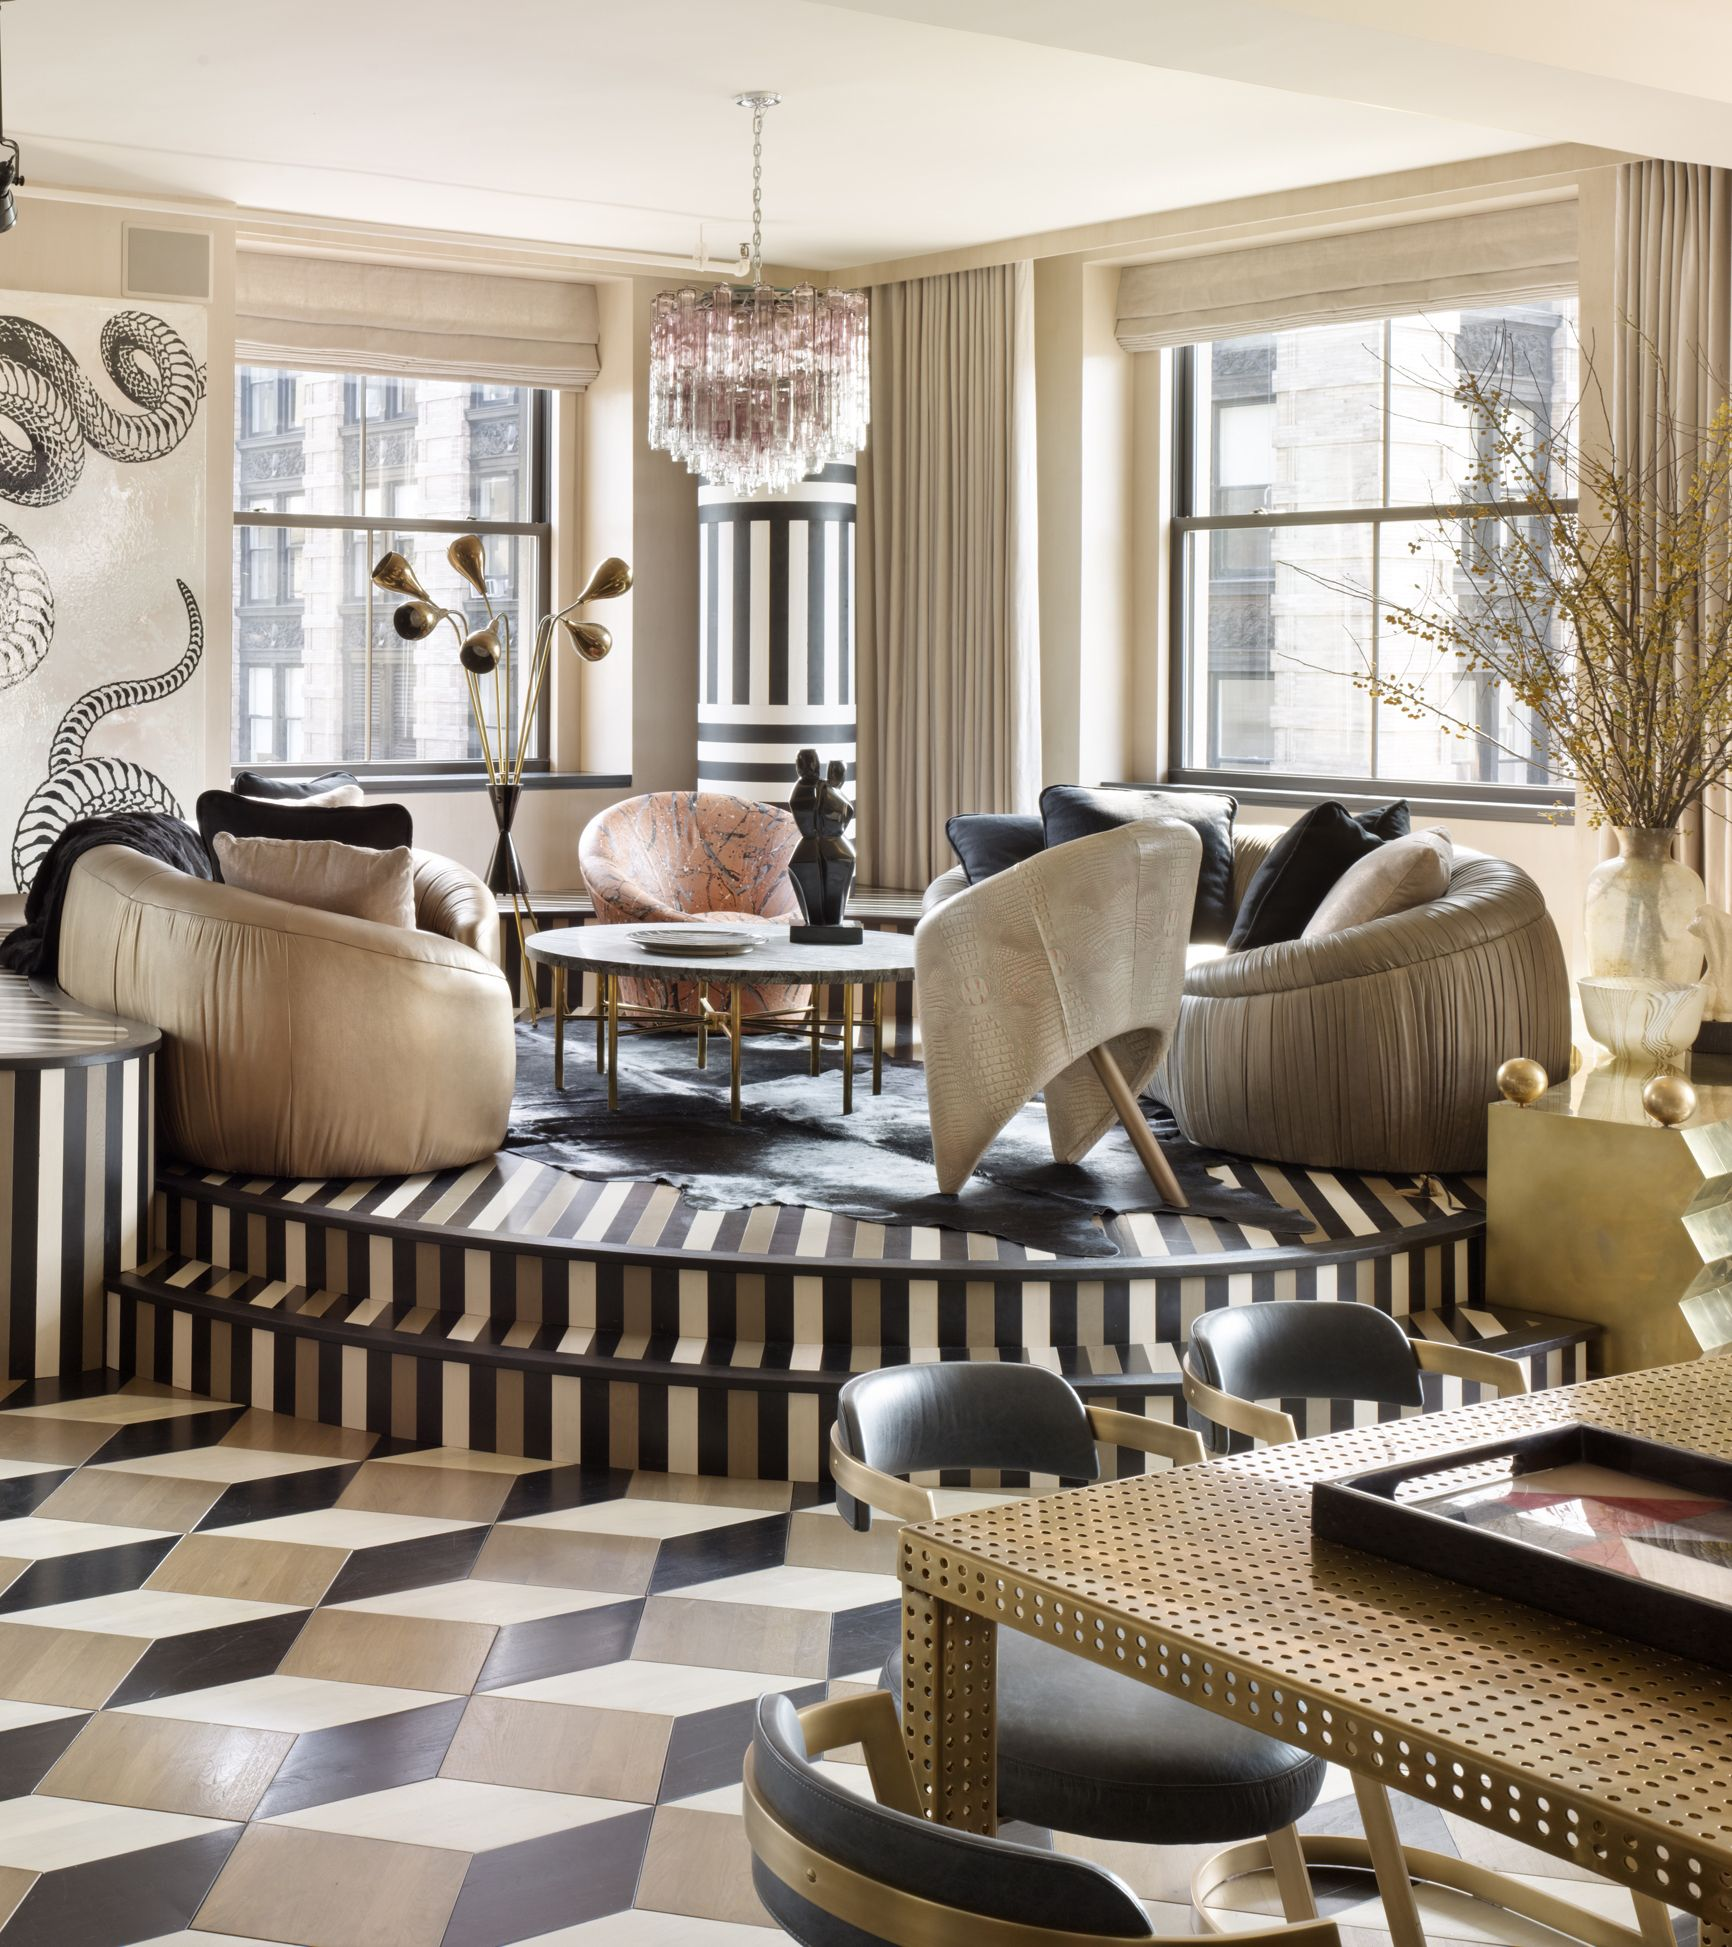 Kelly wearstler interiors spring street residence new for Interior design inspiration new york